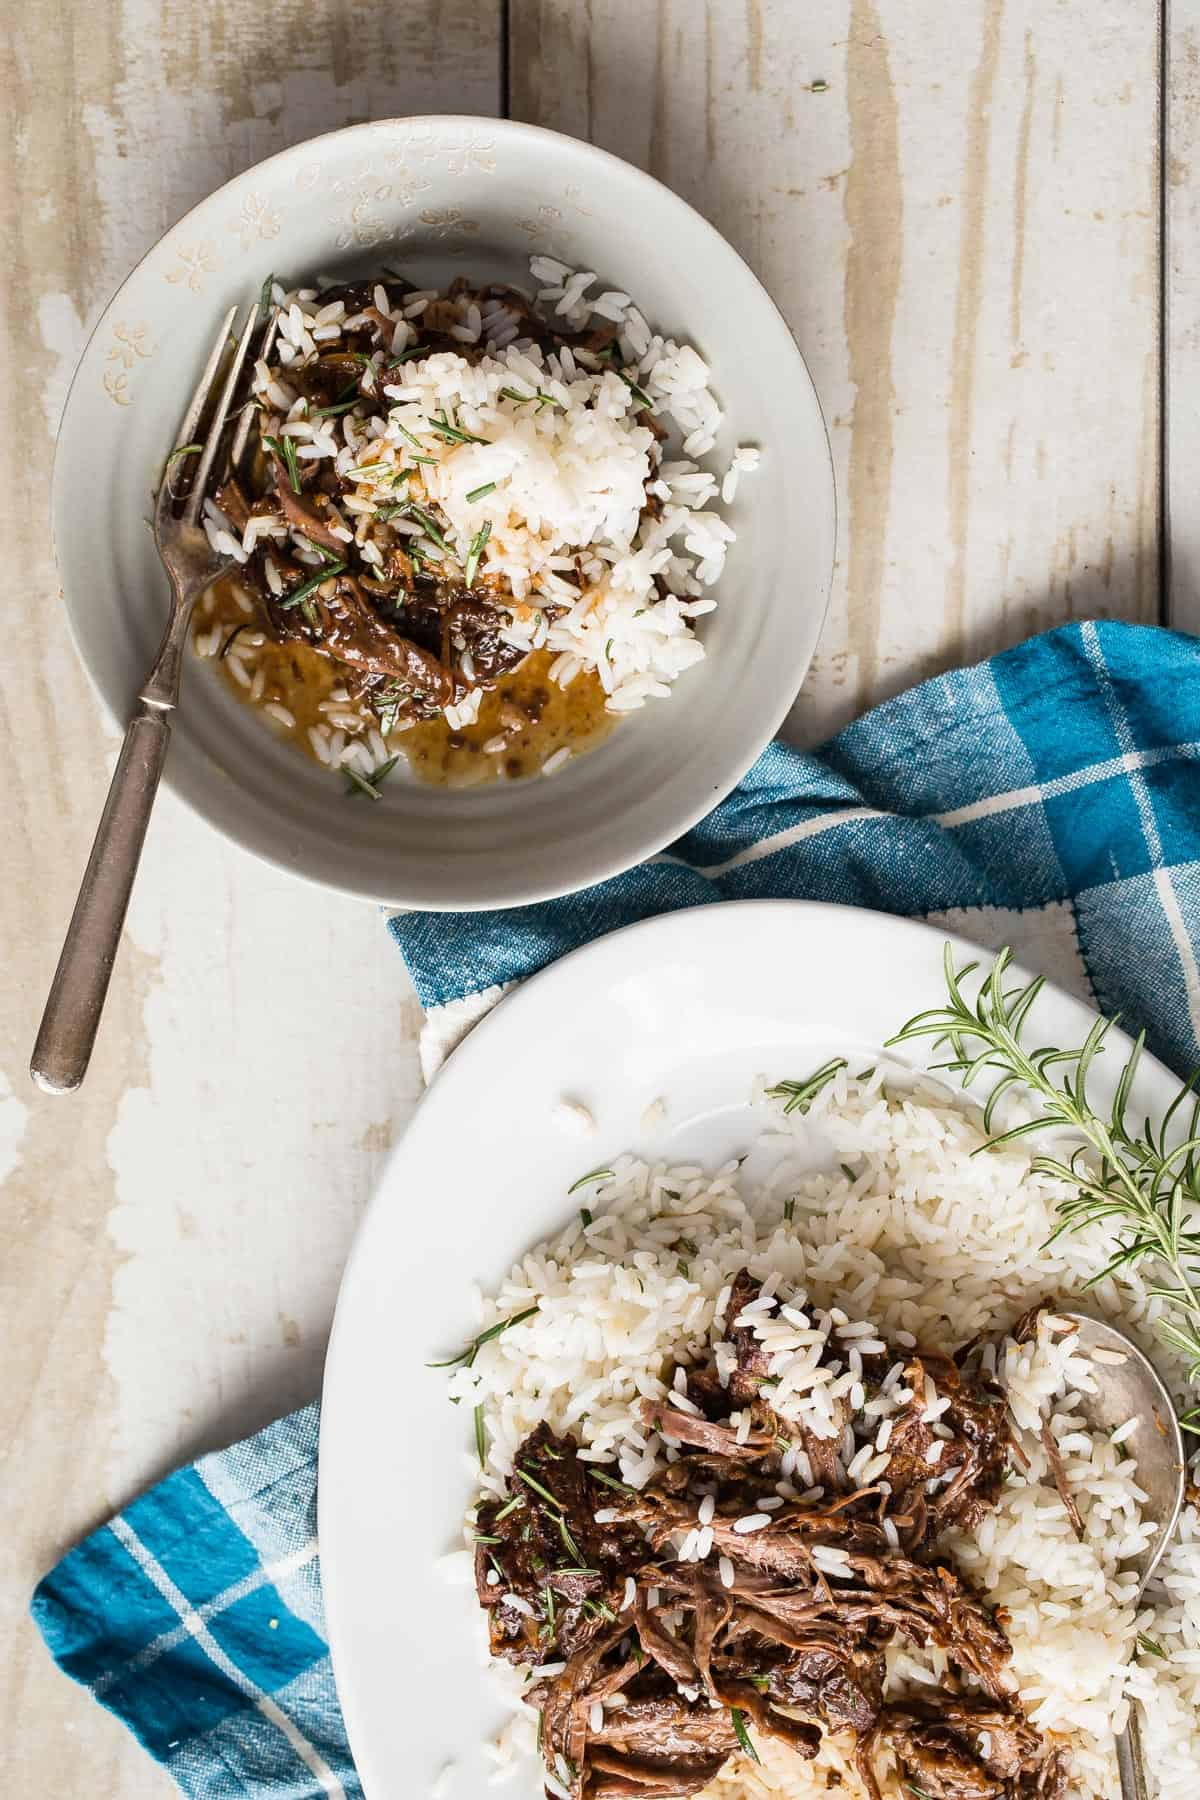 This Slow Cooker Shredded Orange Beef is so tender it might just melt in your mouth. Cooked long and slow with orange juice, beef stock and blackberry preserves, it's sure to please anyone in the family.